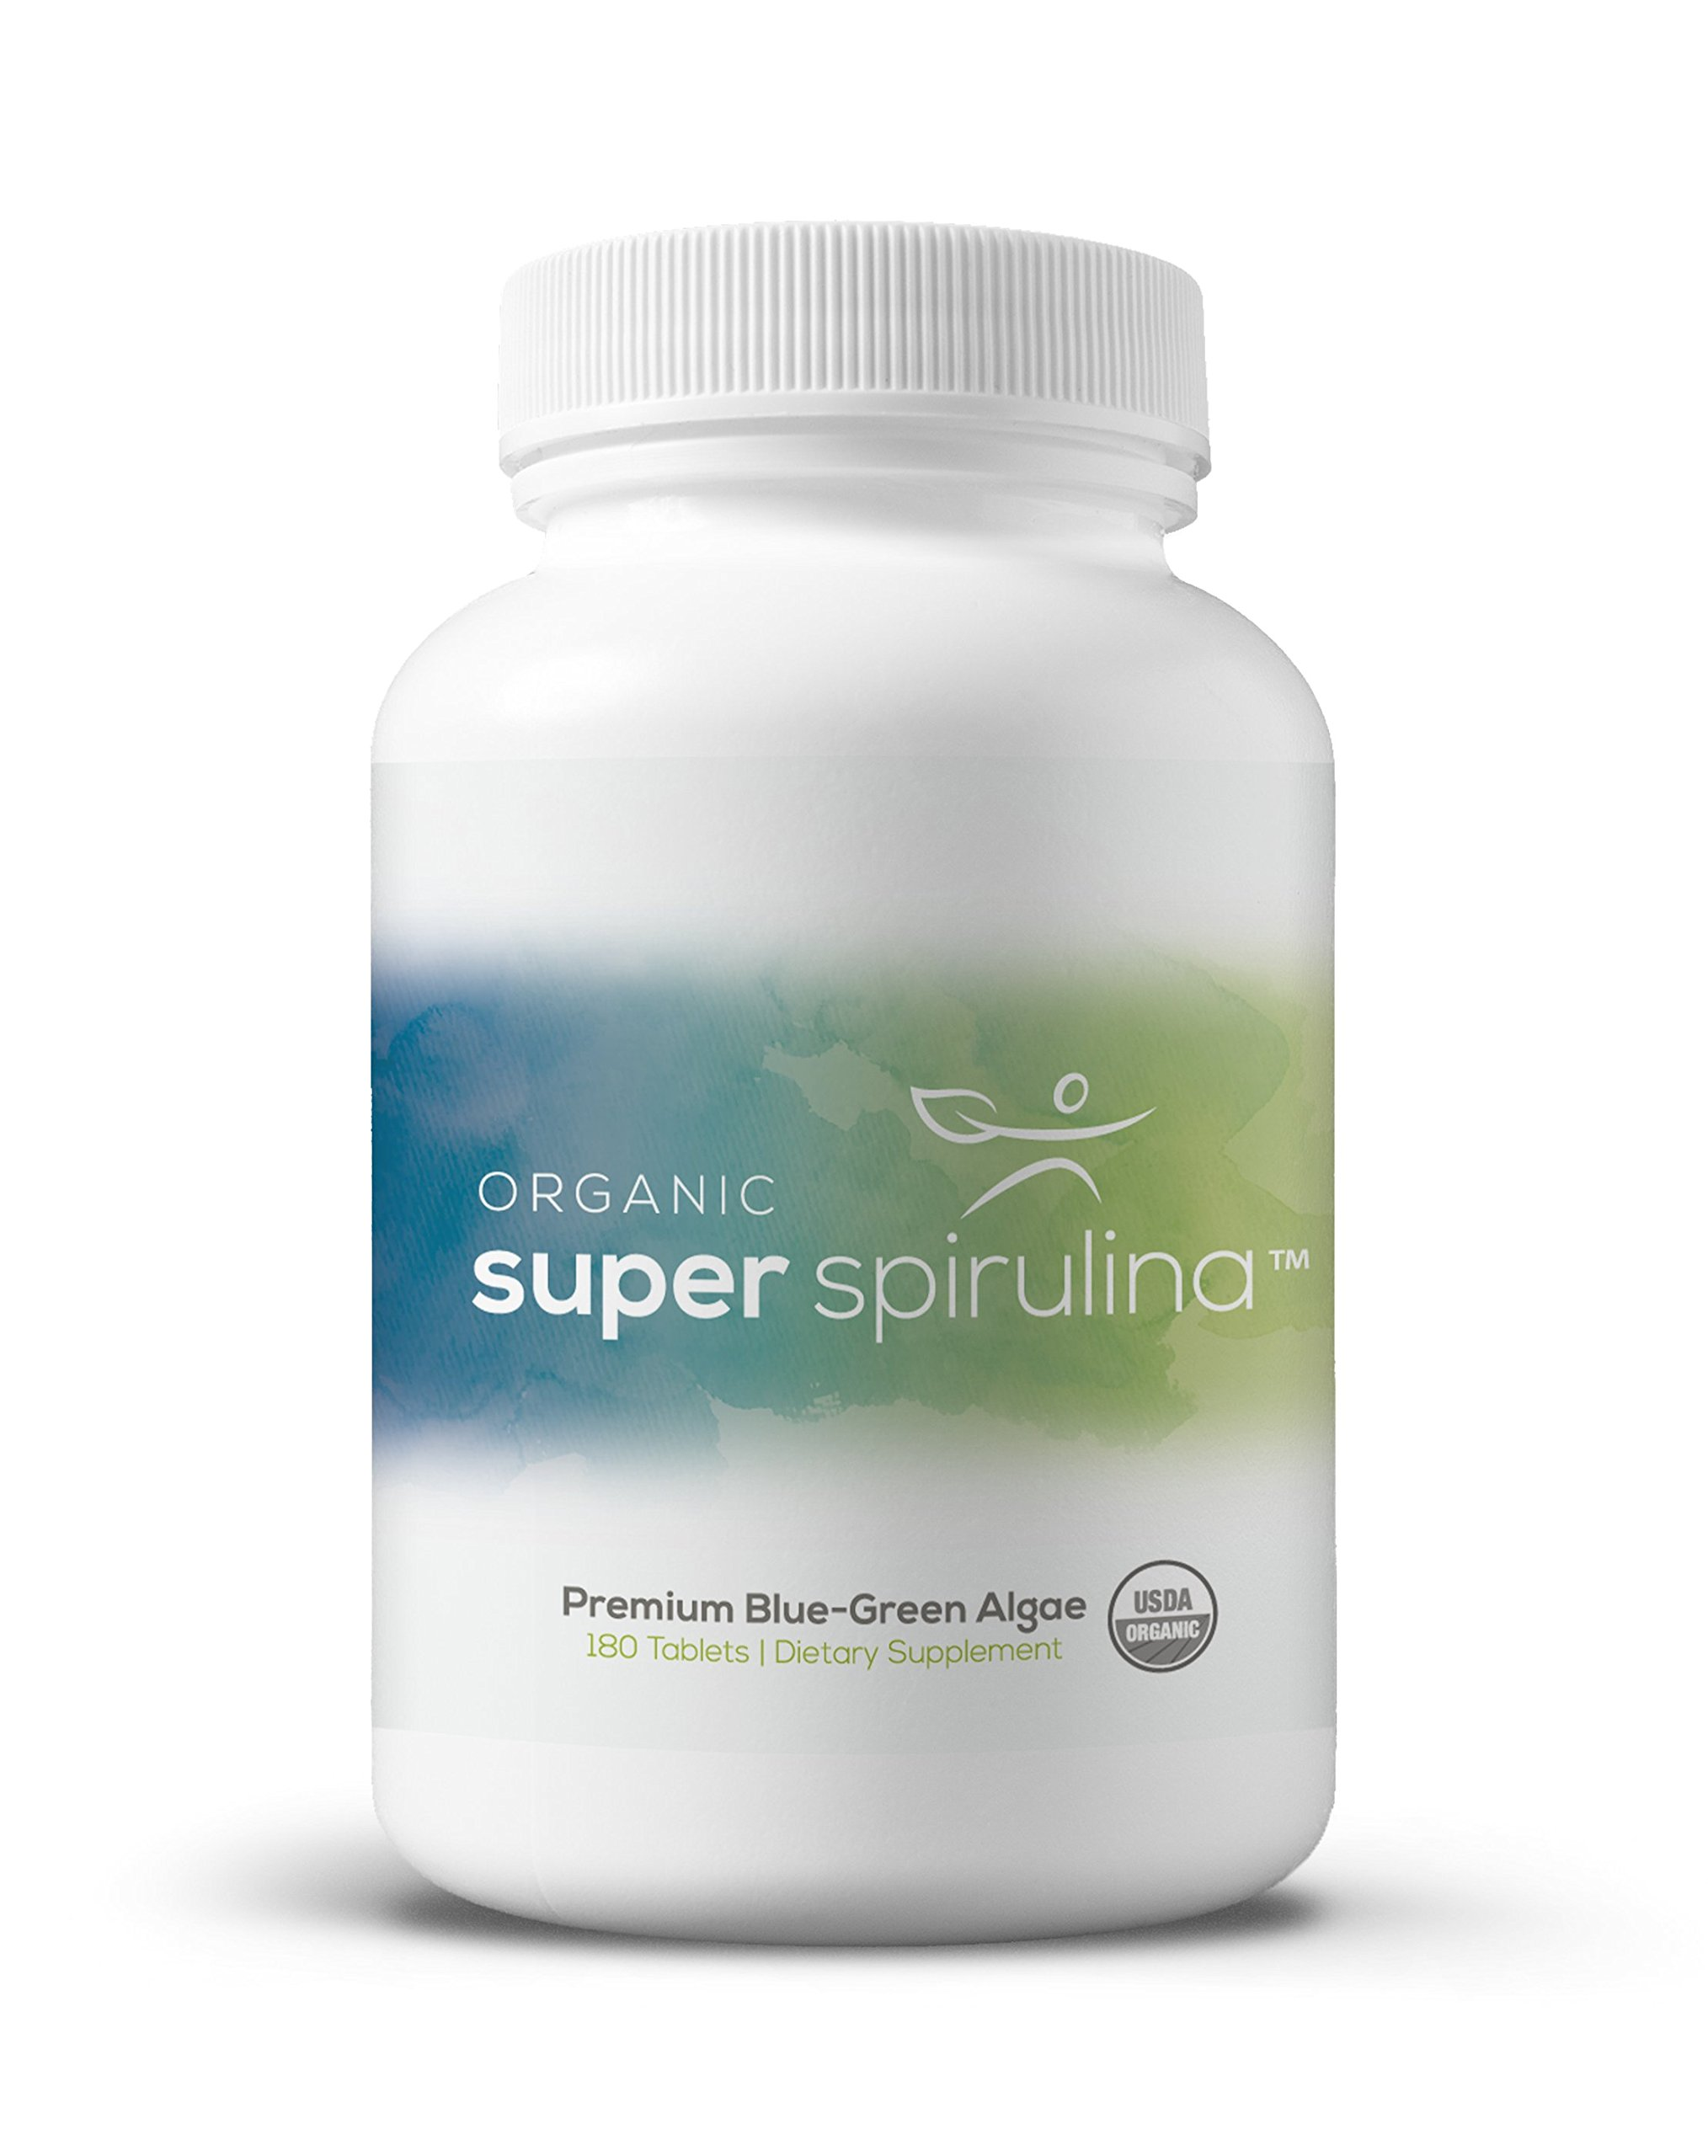 Super Spirulina® Pure USDA Certified Organic Spirulina Tablets - Blue Green Algae Superfood Supplement - No Additives or Chemicals - Raw, Non GMO, Non-Irradiated Microalgae - 500 mg Tablets, 180 Count